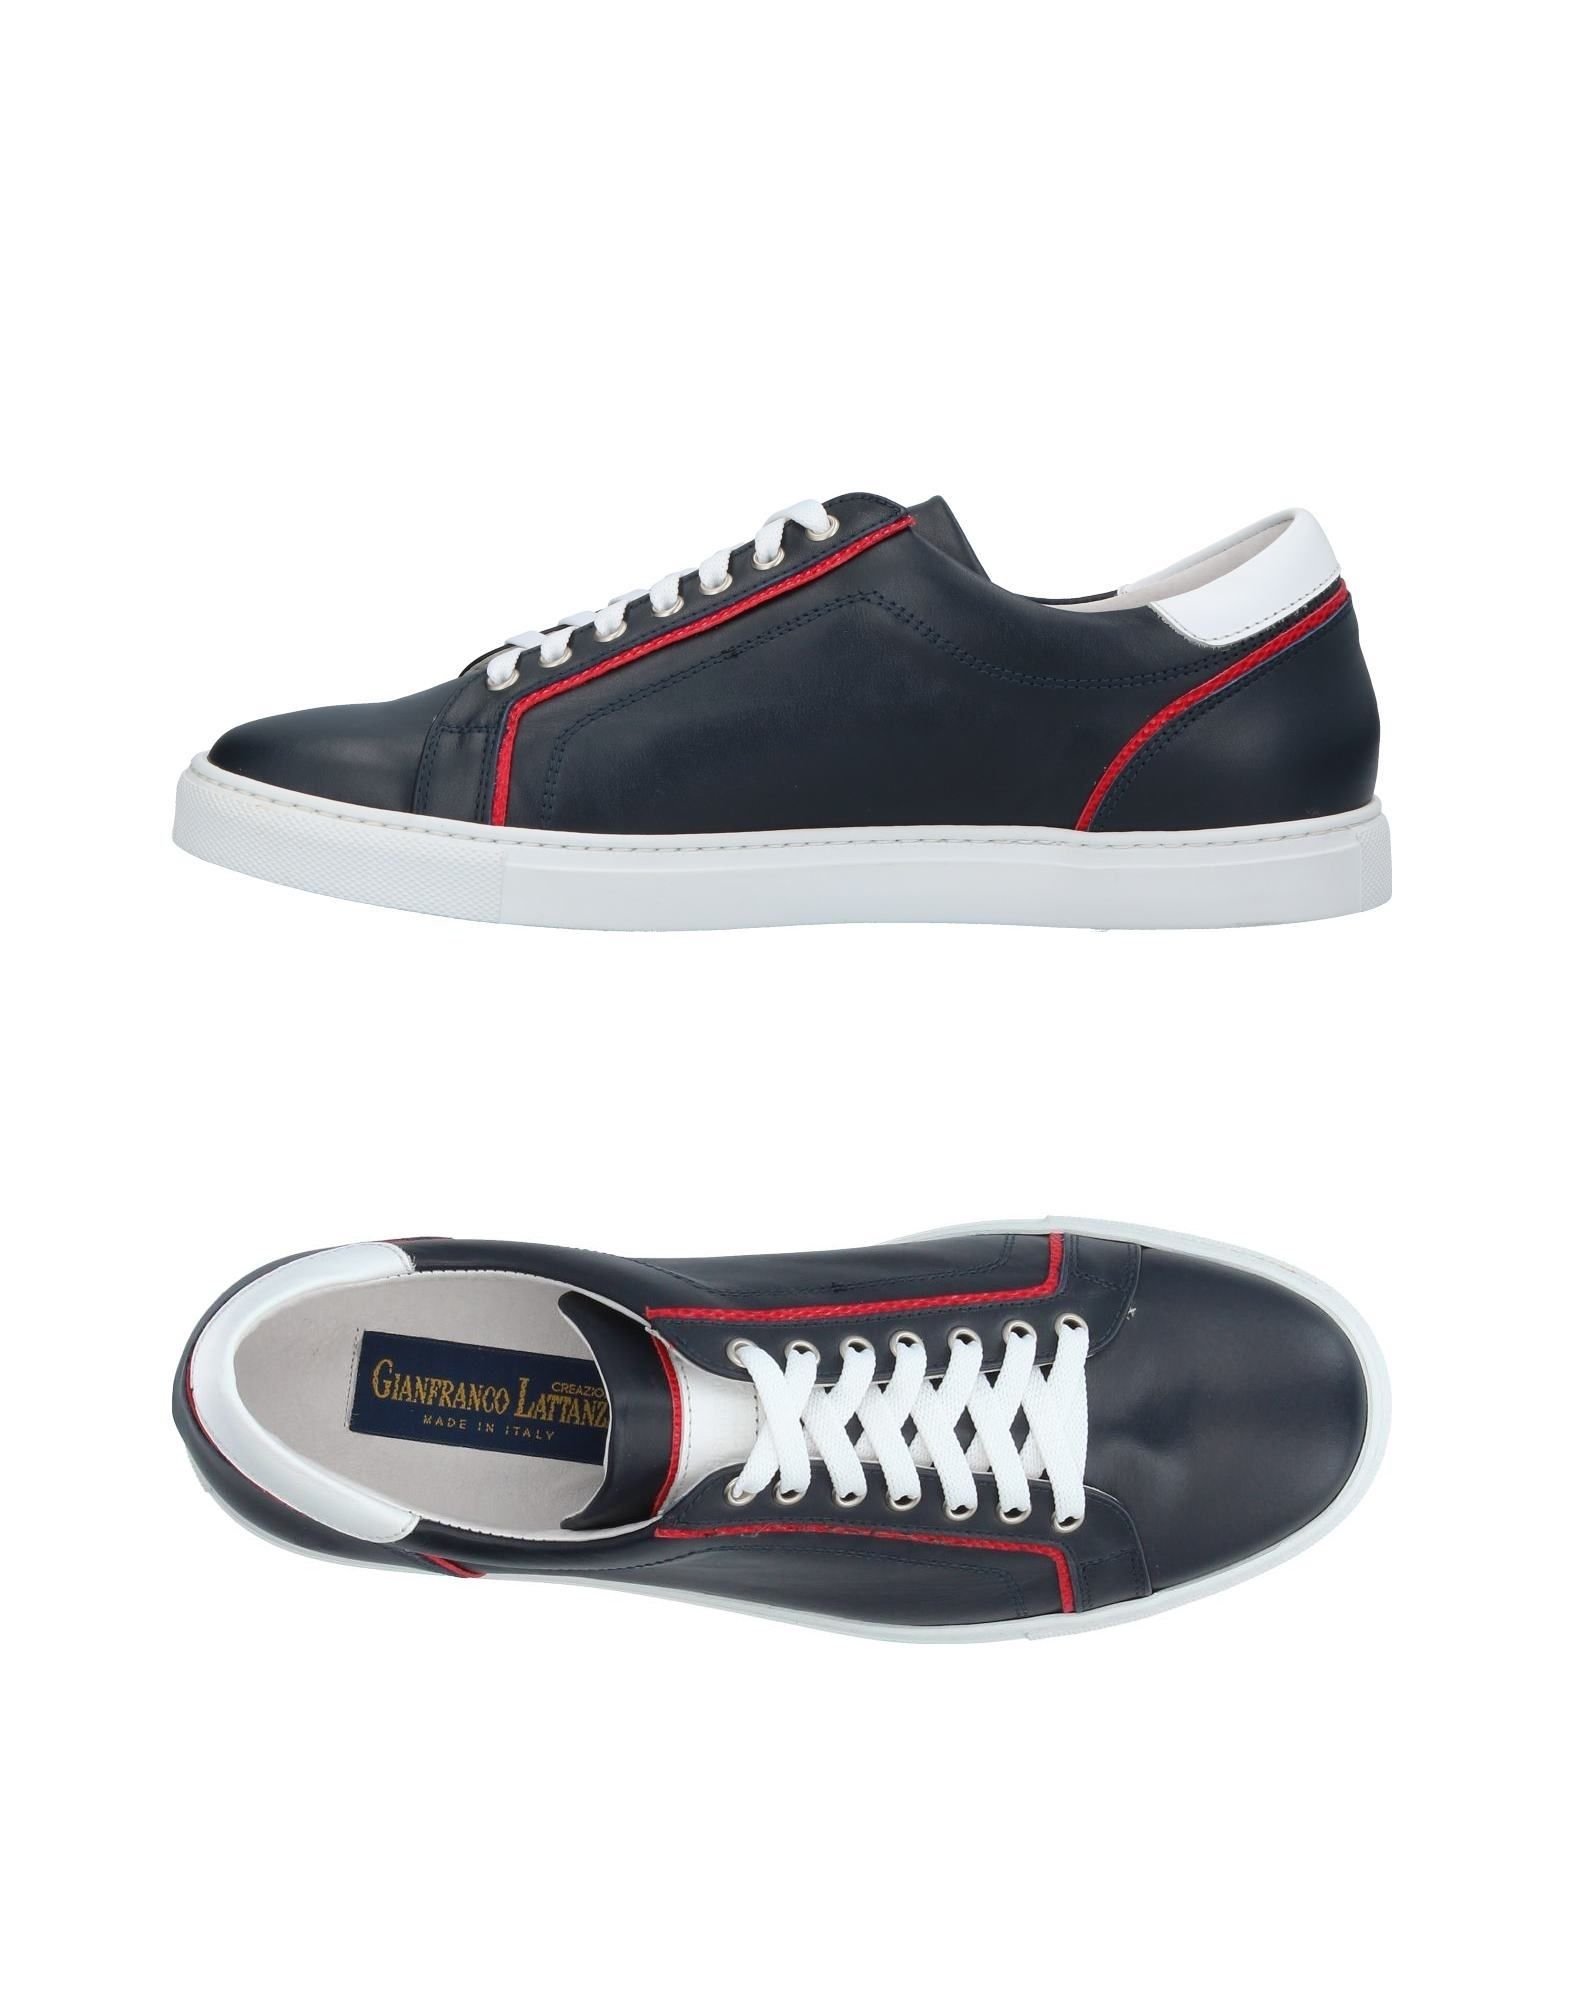 Sneakers Gianfranco Lattanzi Uomo - Acquista online su